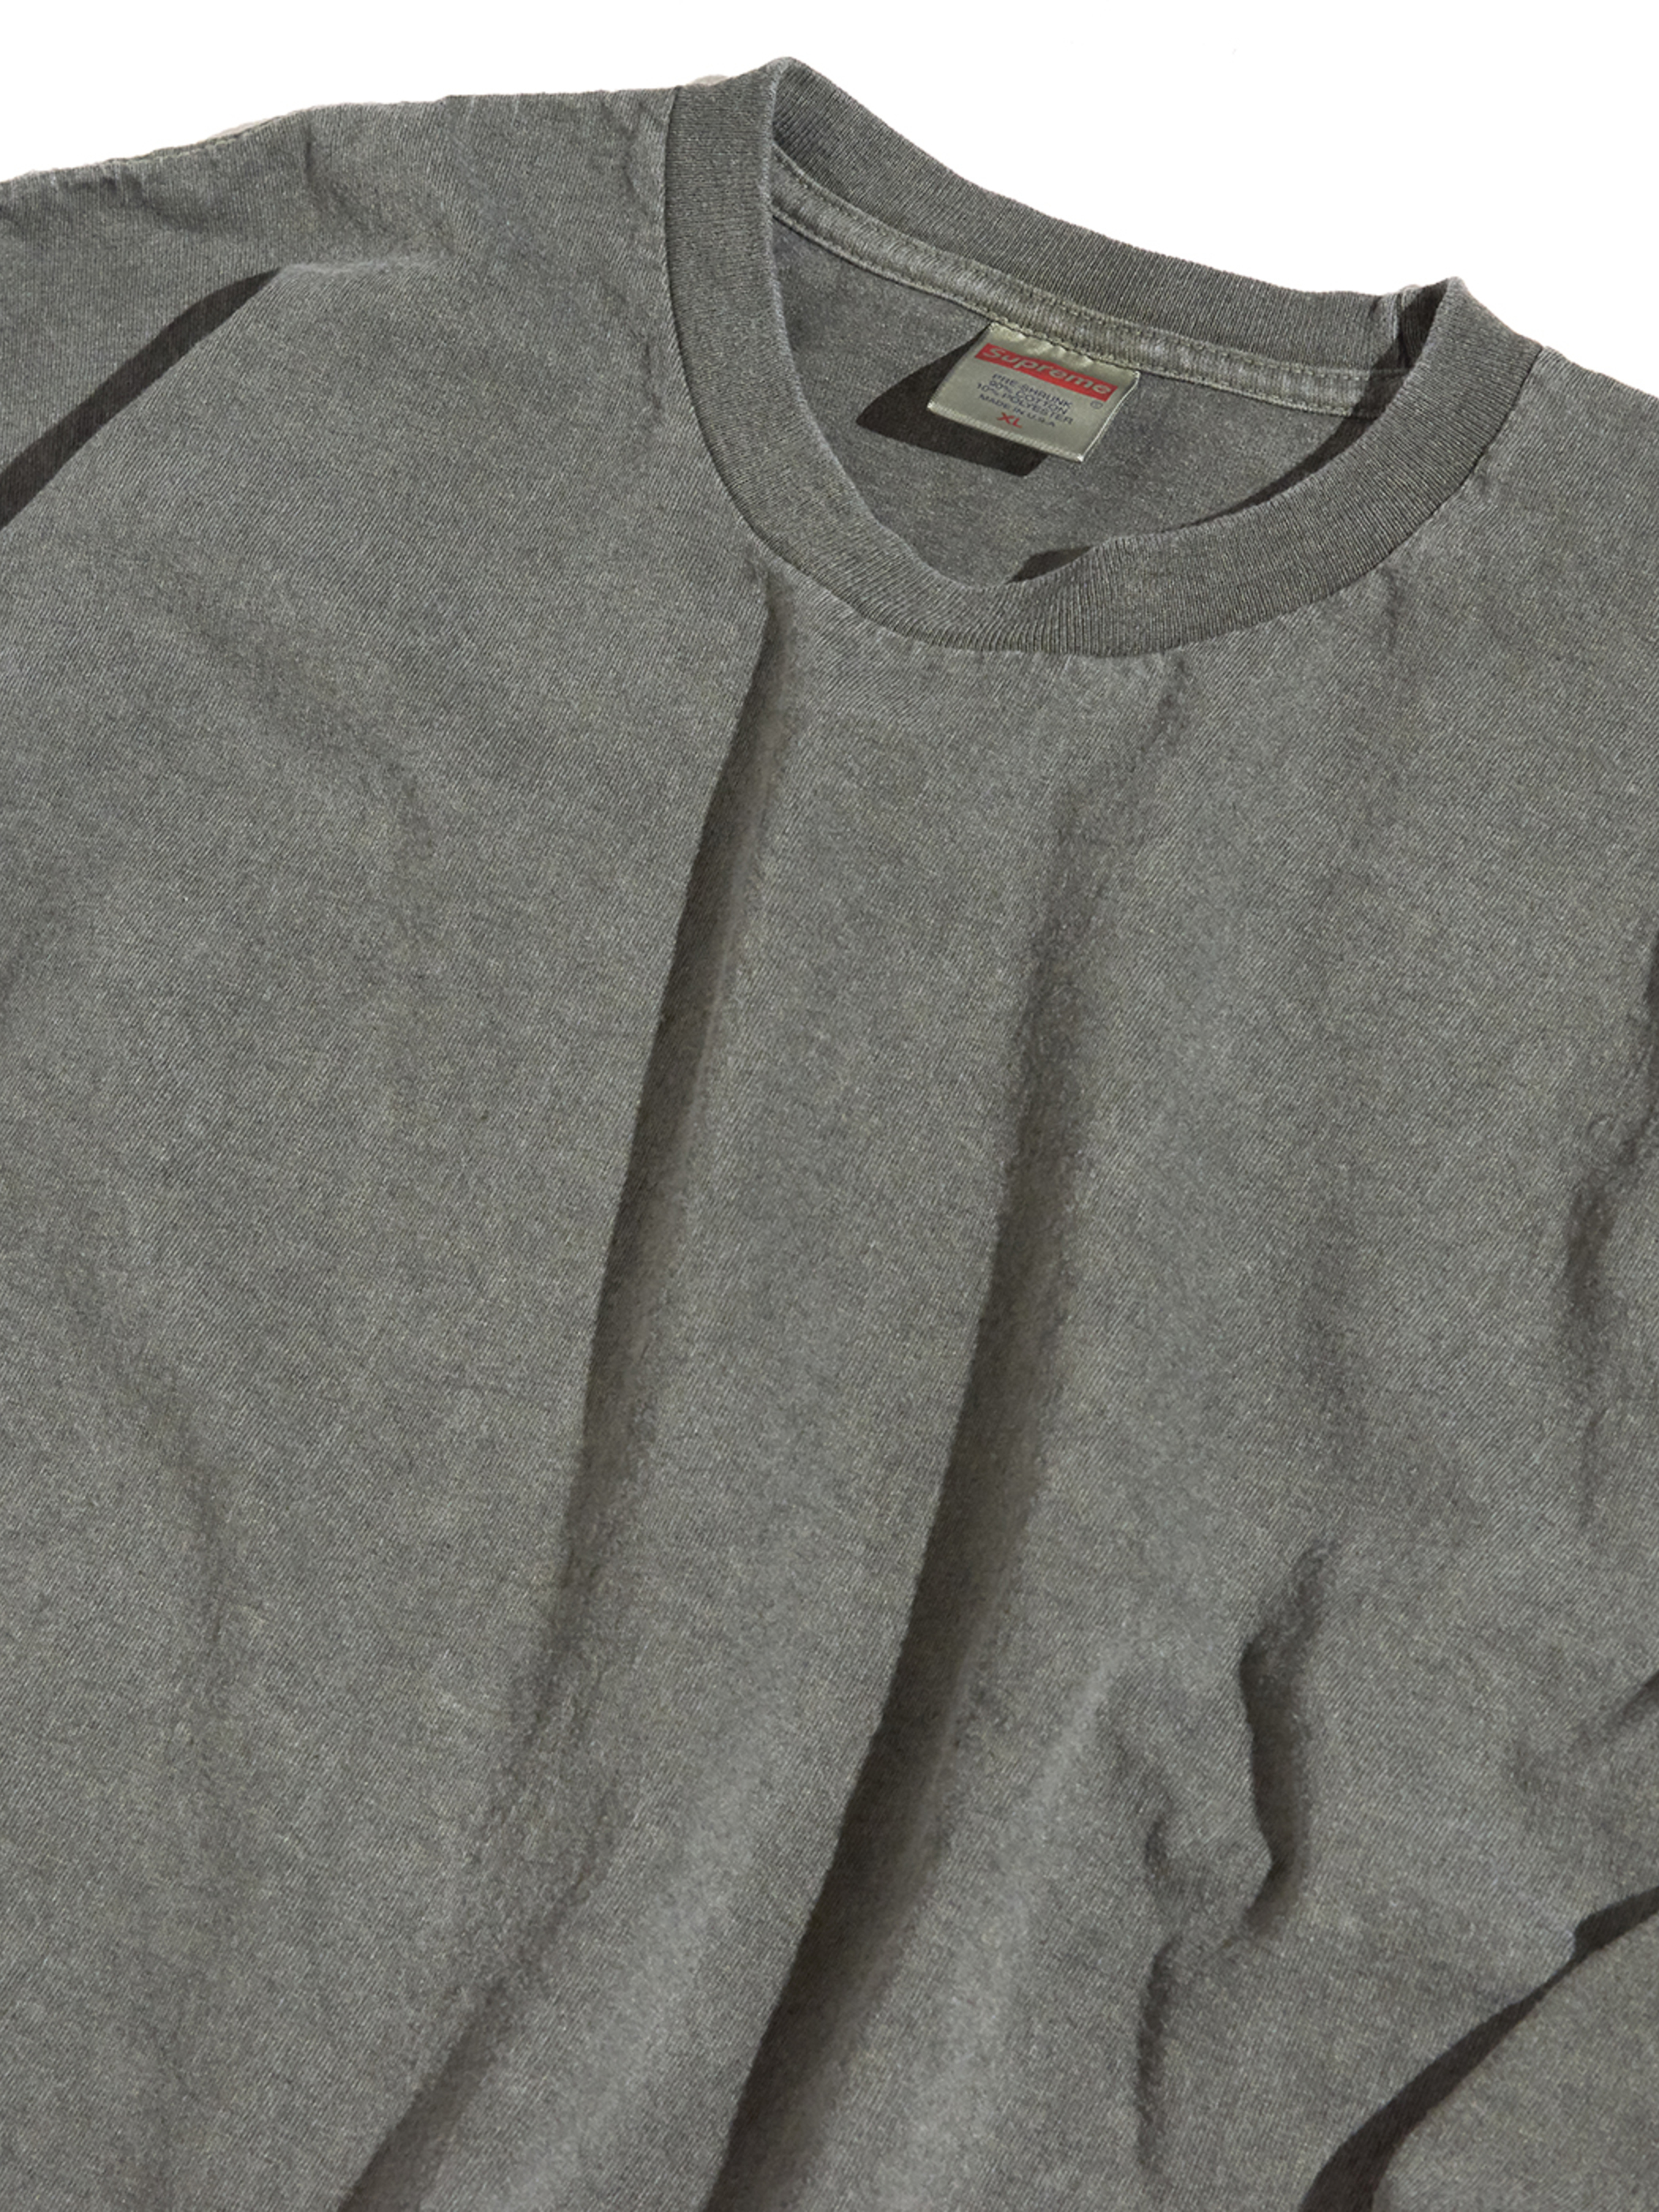 """2000s """"SUPREME"""" L/S blank tee -PIGMENT DYED OLIVE-"""